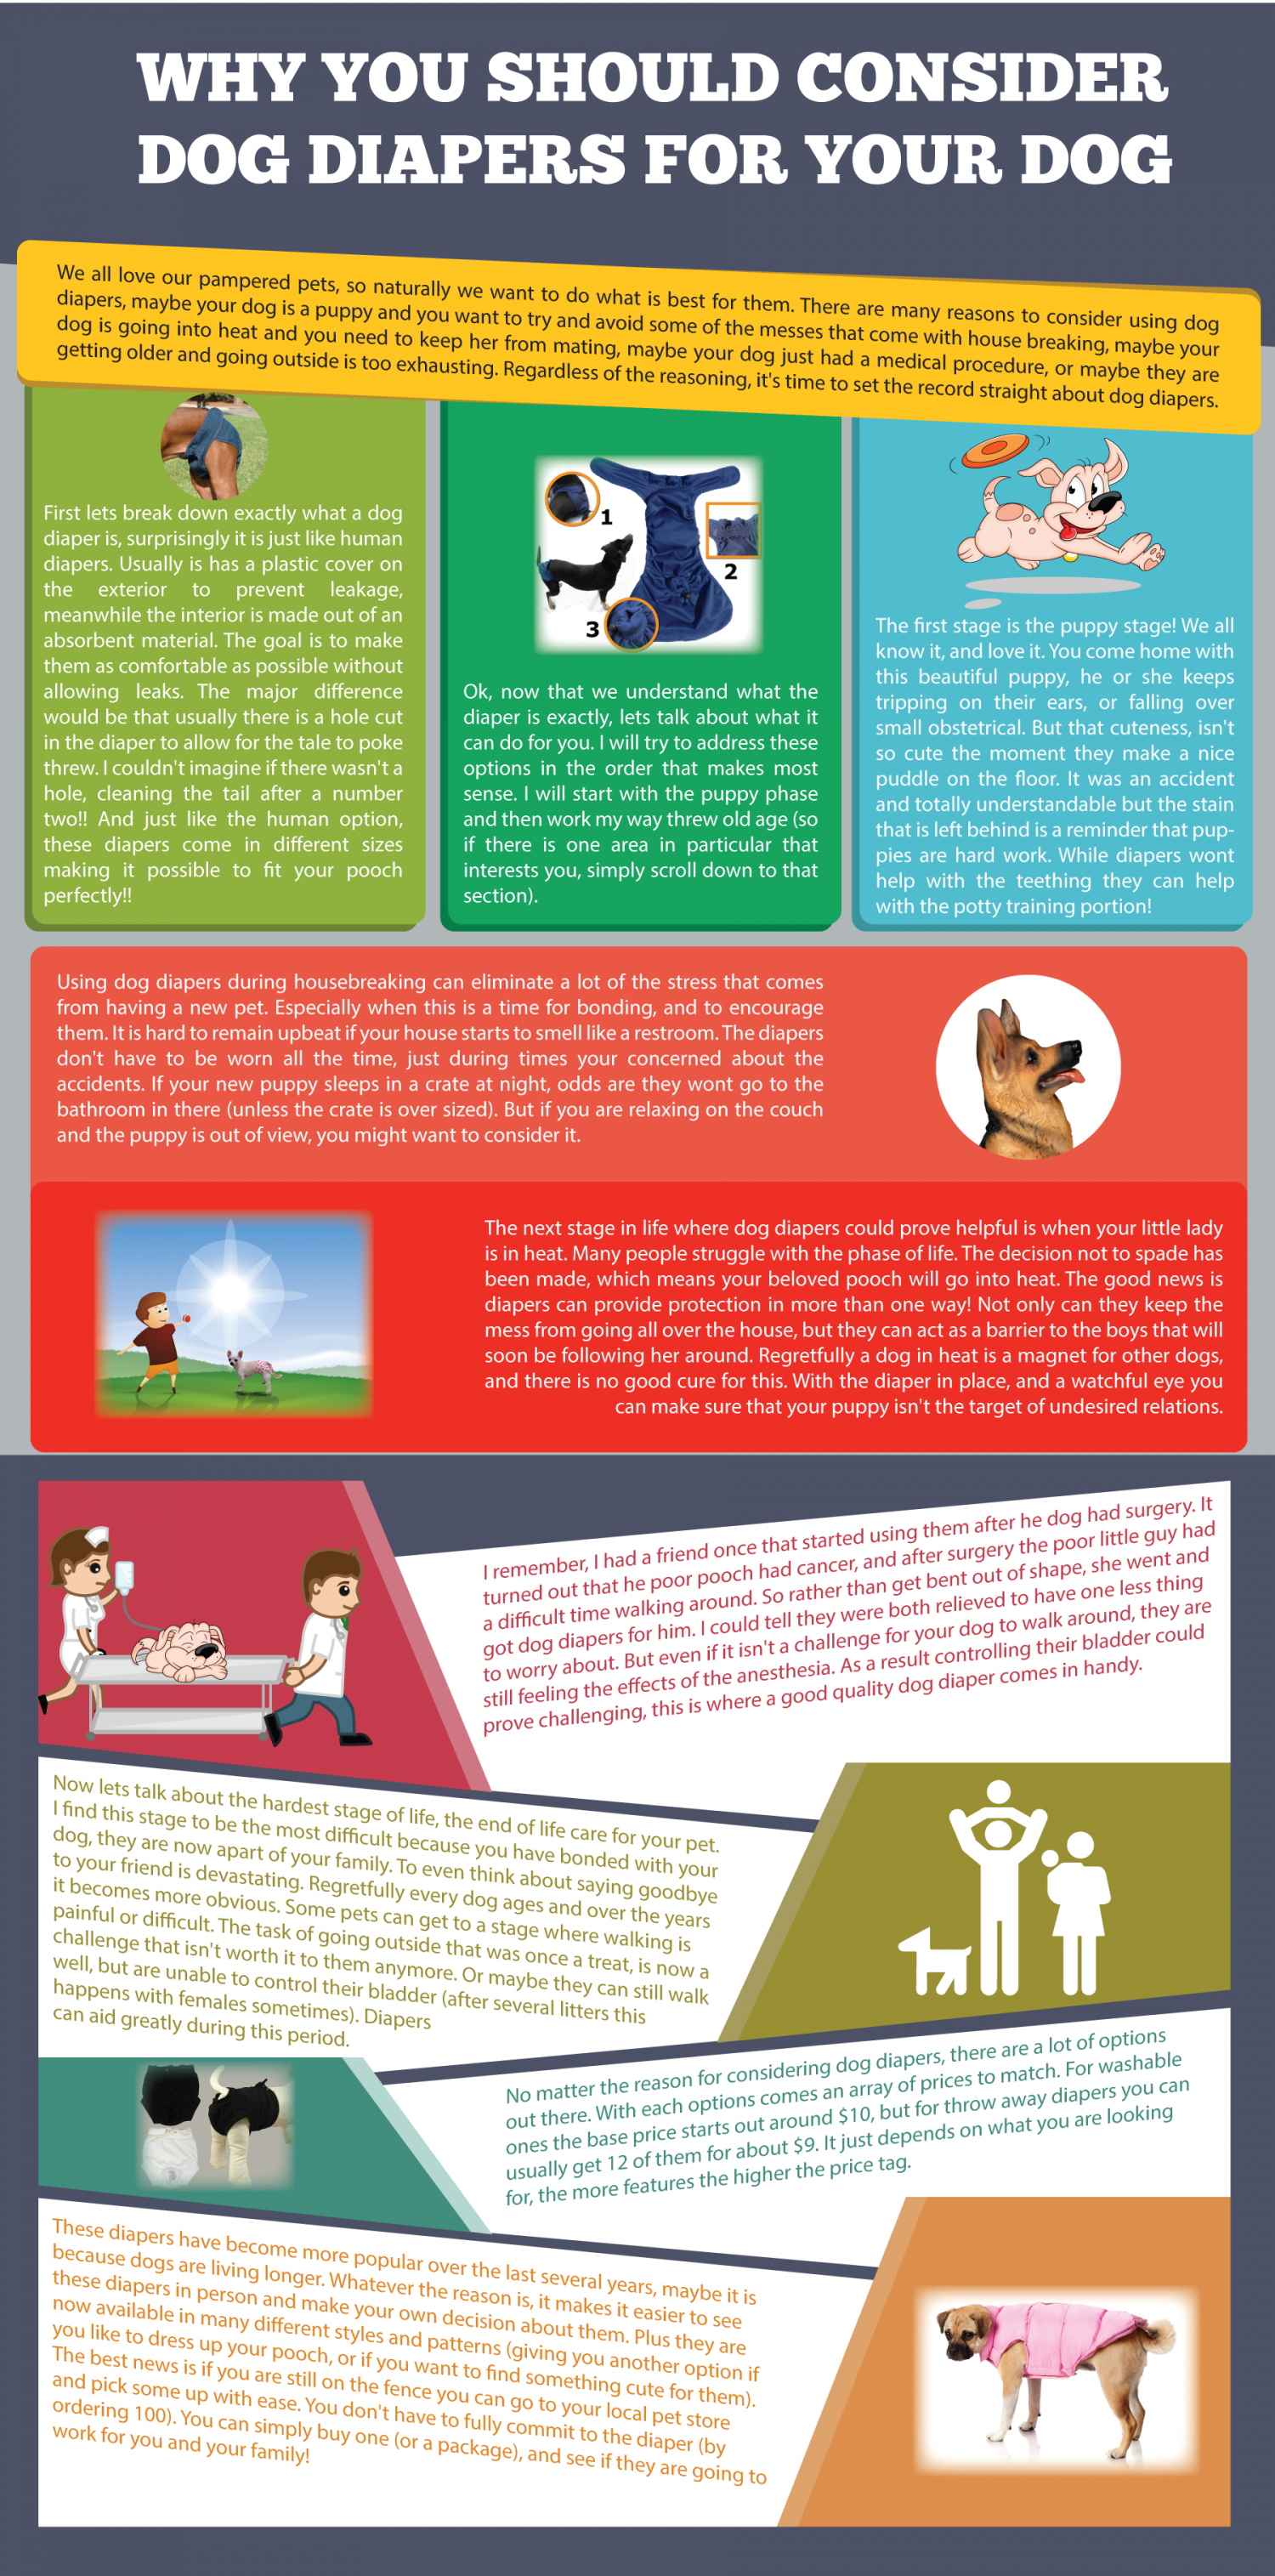 Why You Should Consider Dog Diapers For Your Dog Infographic